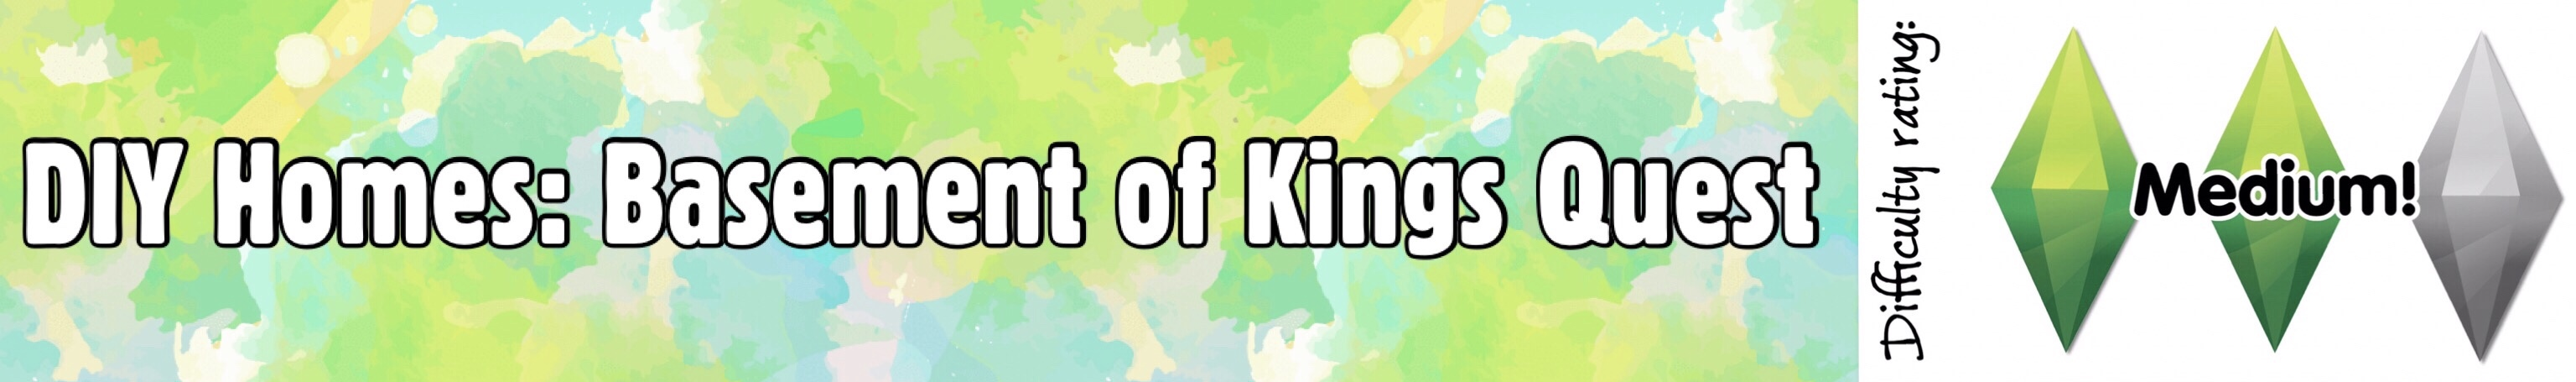 sims freeplay basement of kings quest – The Girl Who Games